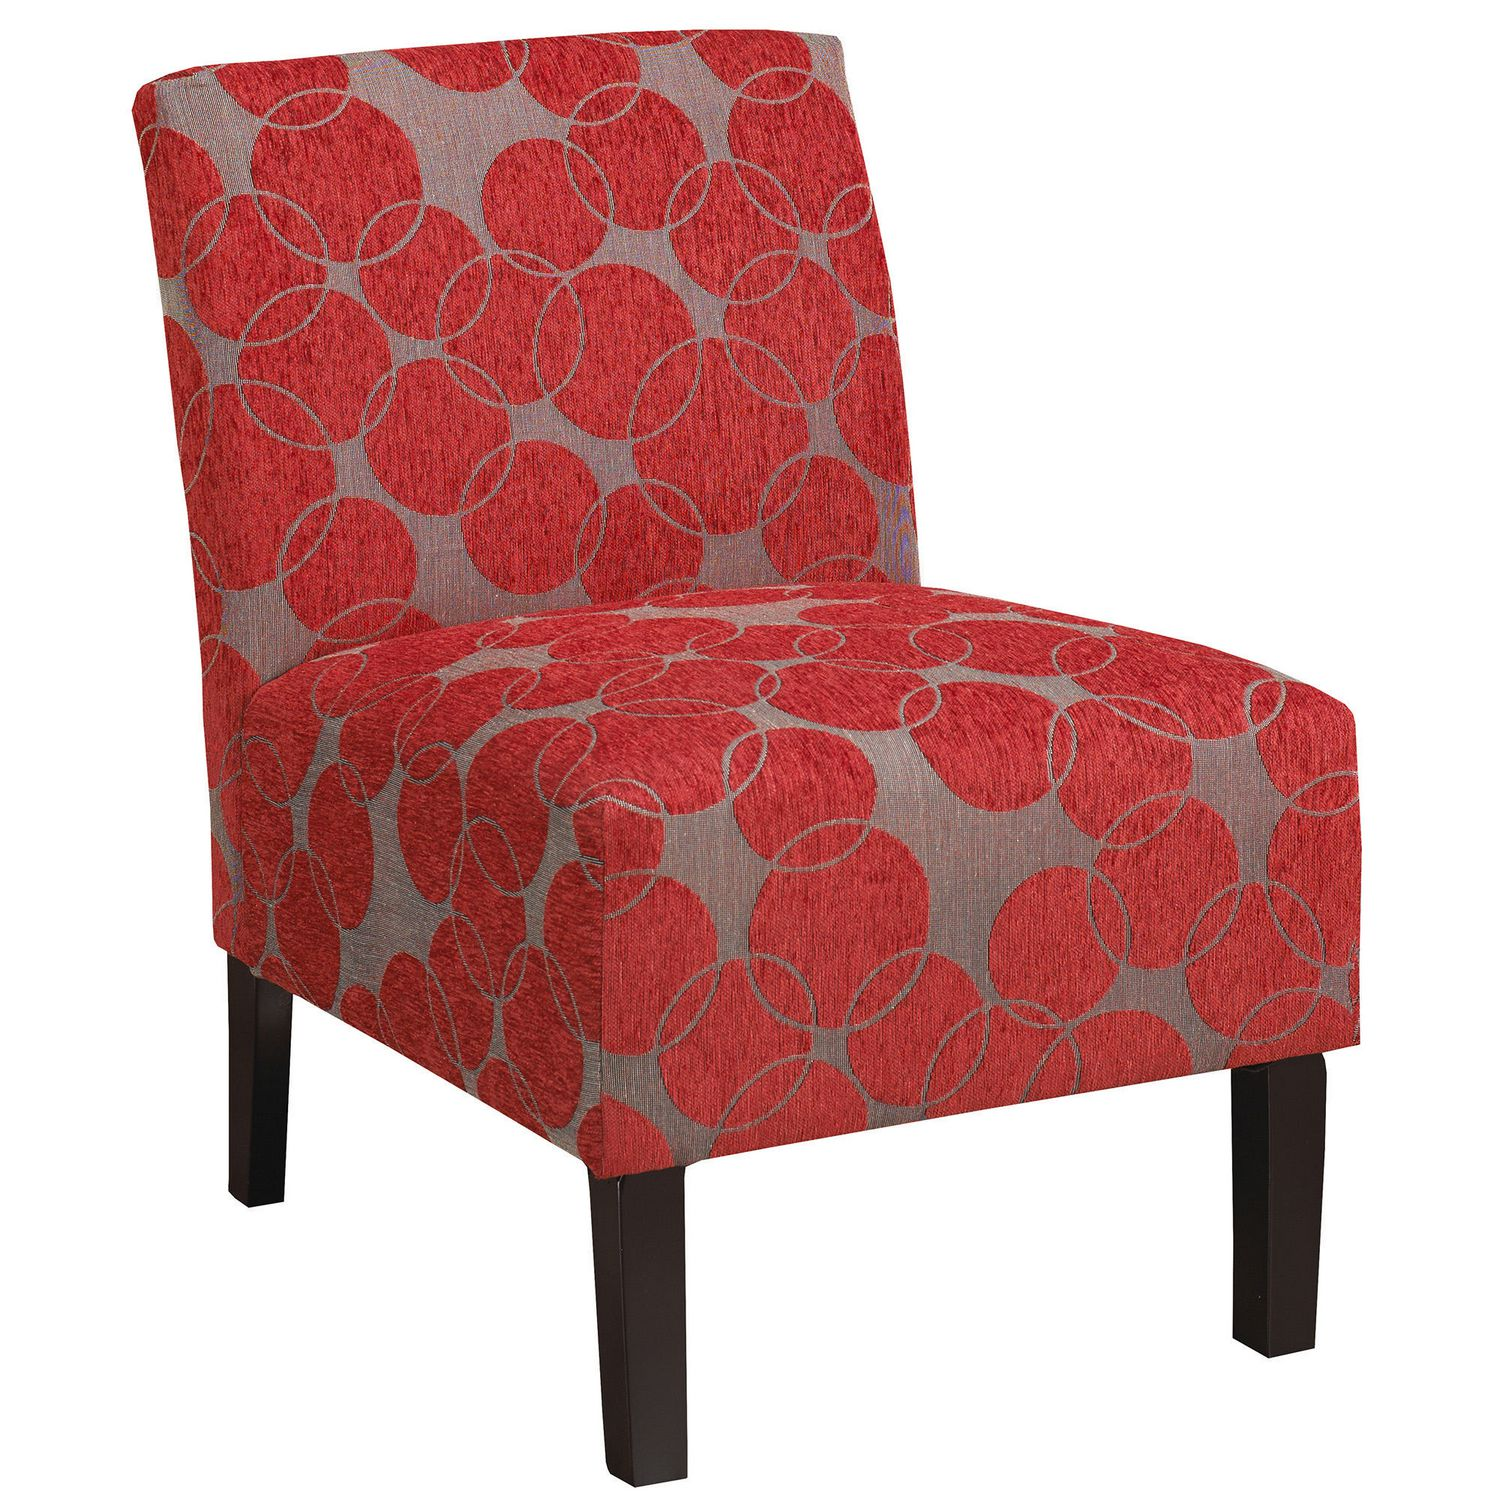 Modern Whi Fabric Red Accent Chair Walmart Canada Red Accent Chair Uk Red Accent Chair Calgary houzz 01 Red Accent Chair